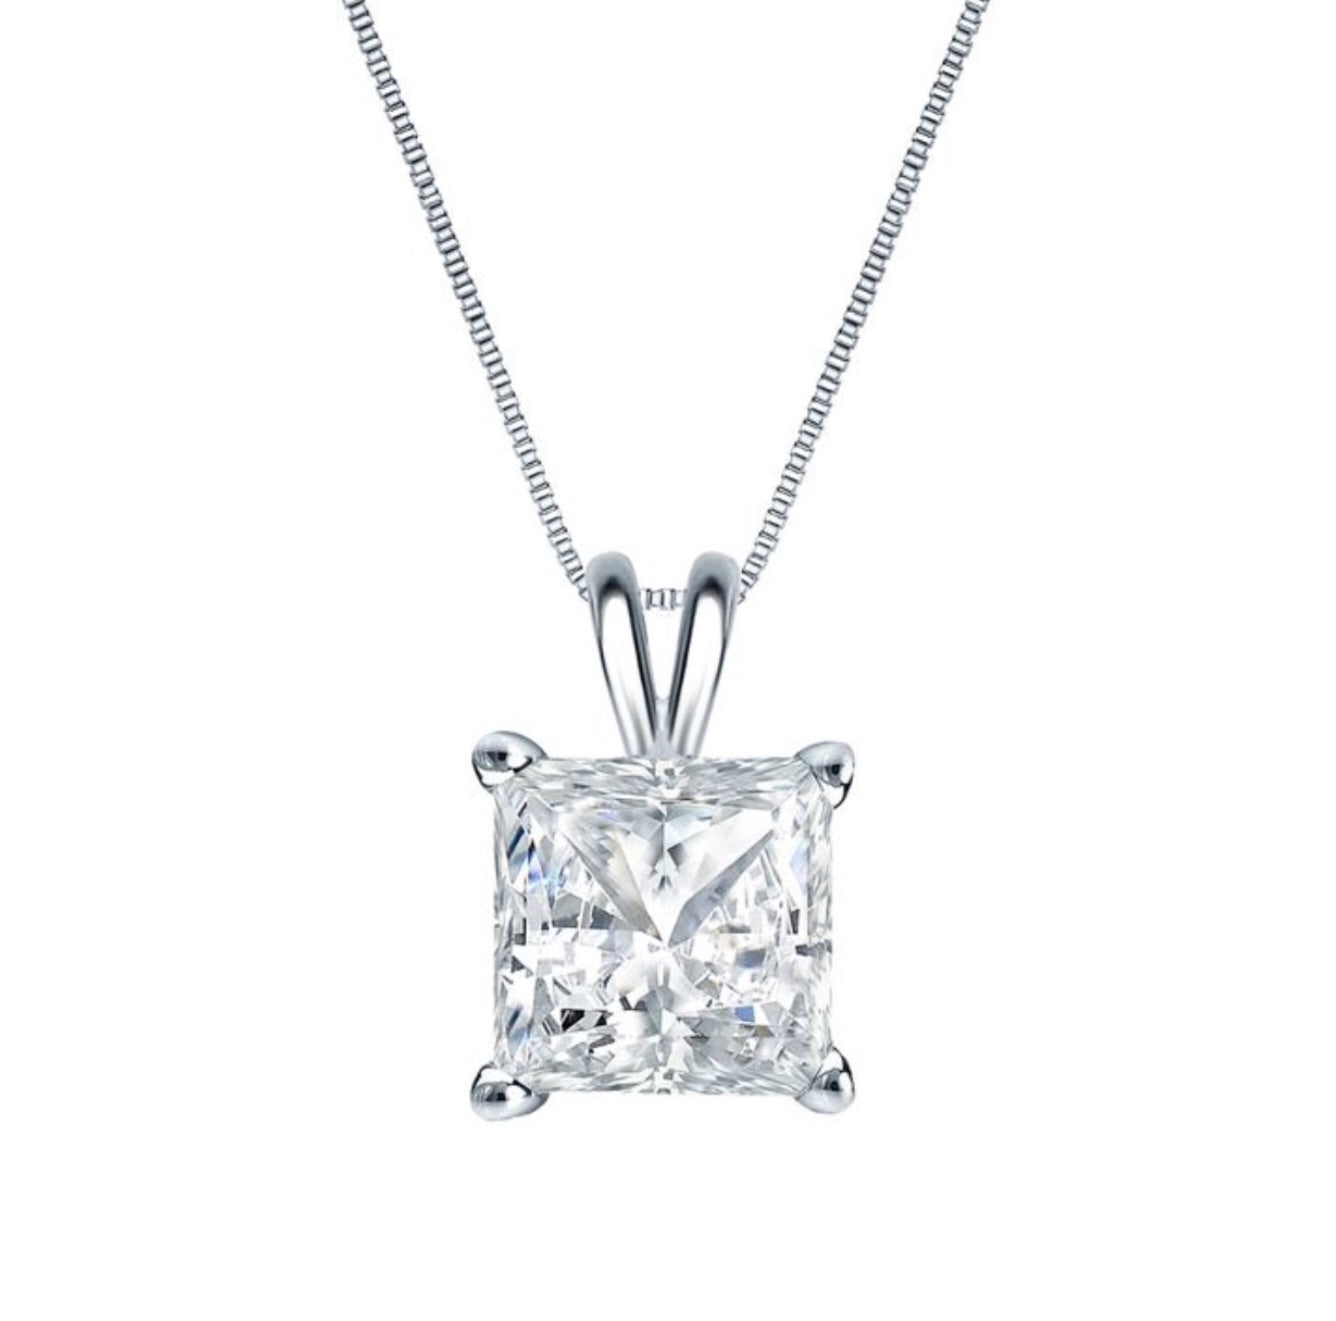 princess products bail diamond in gold pendent double white mirabess cut pendant solitaire